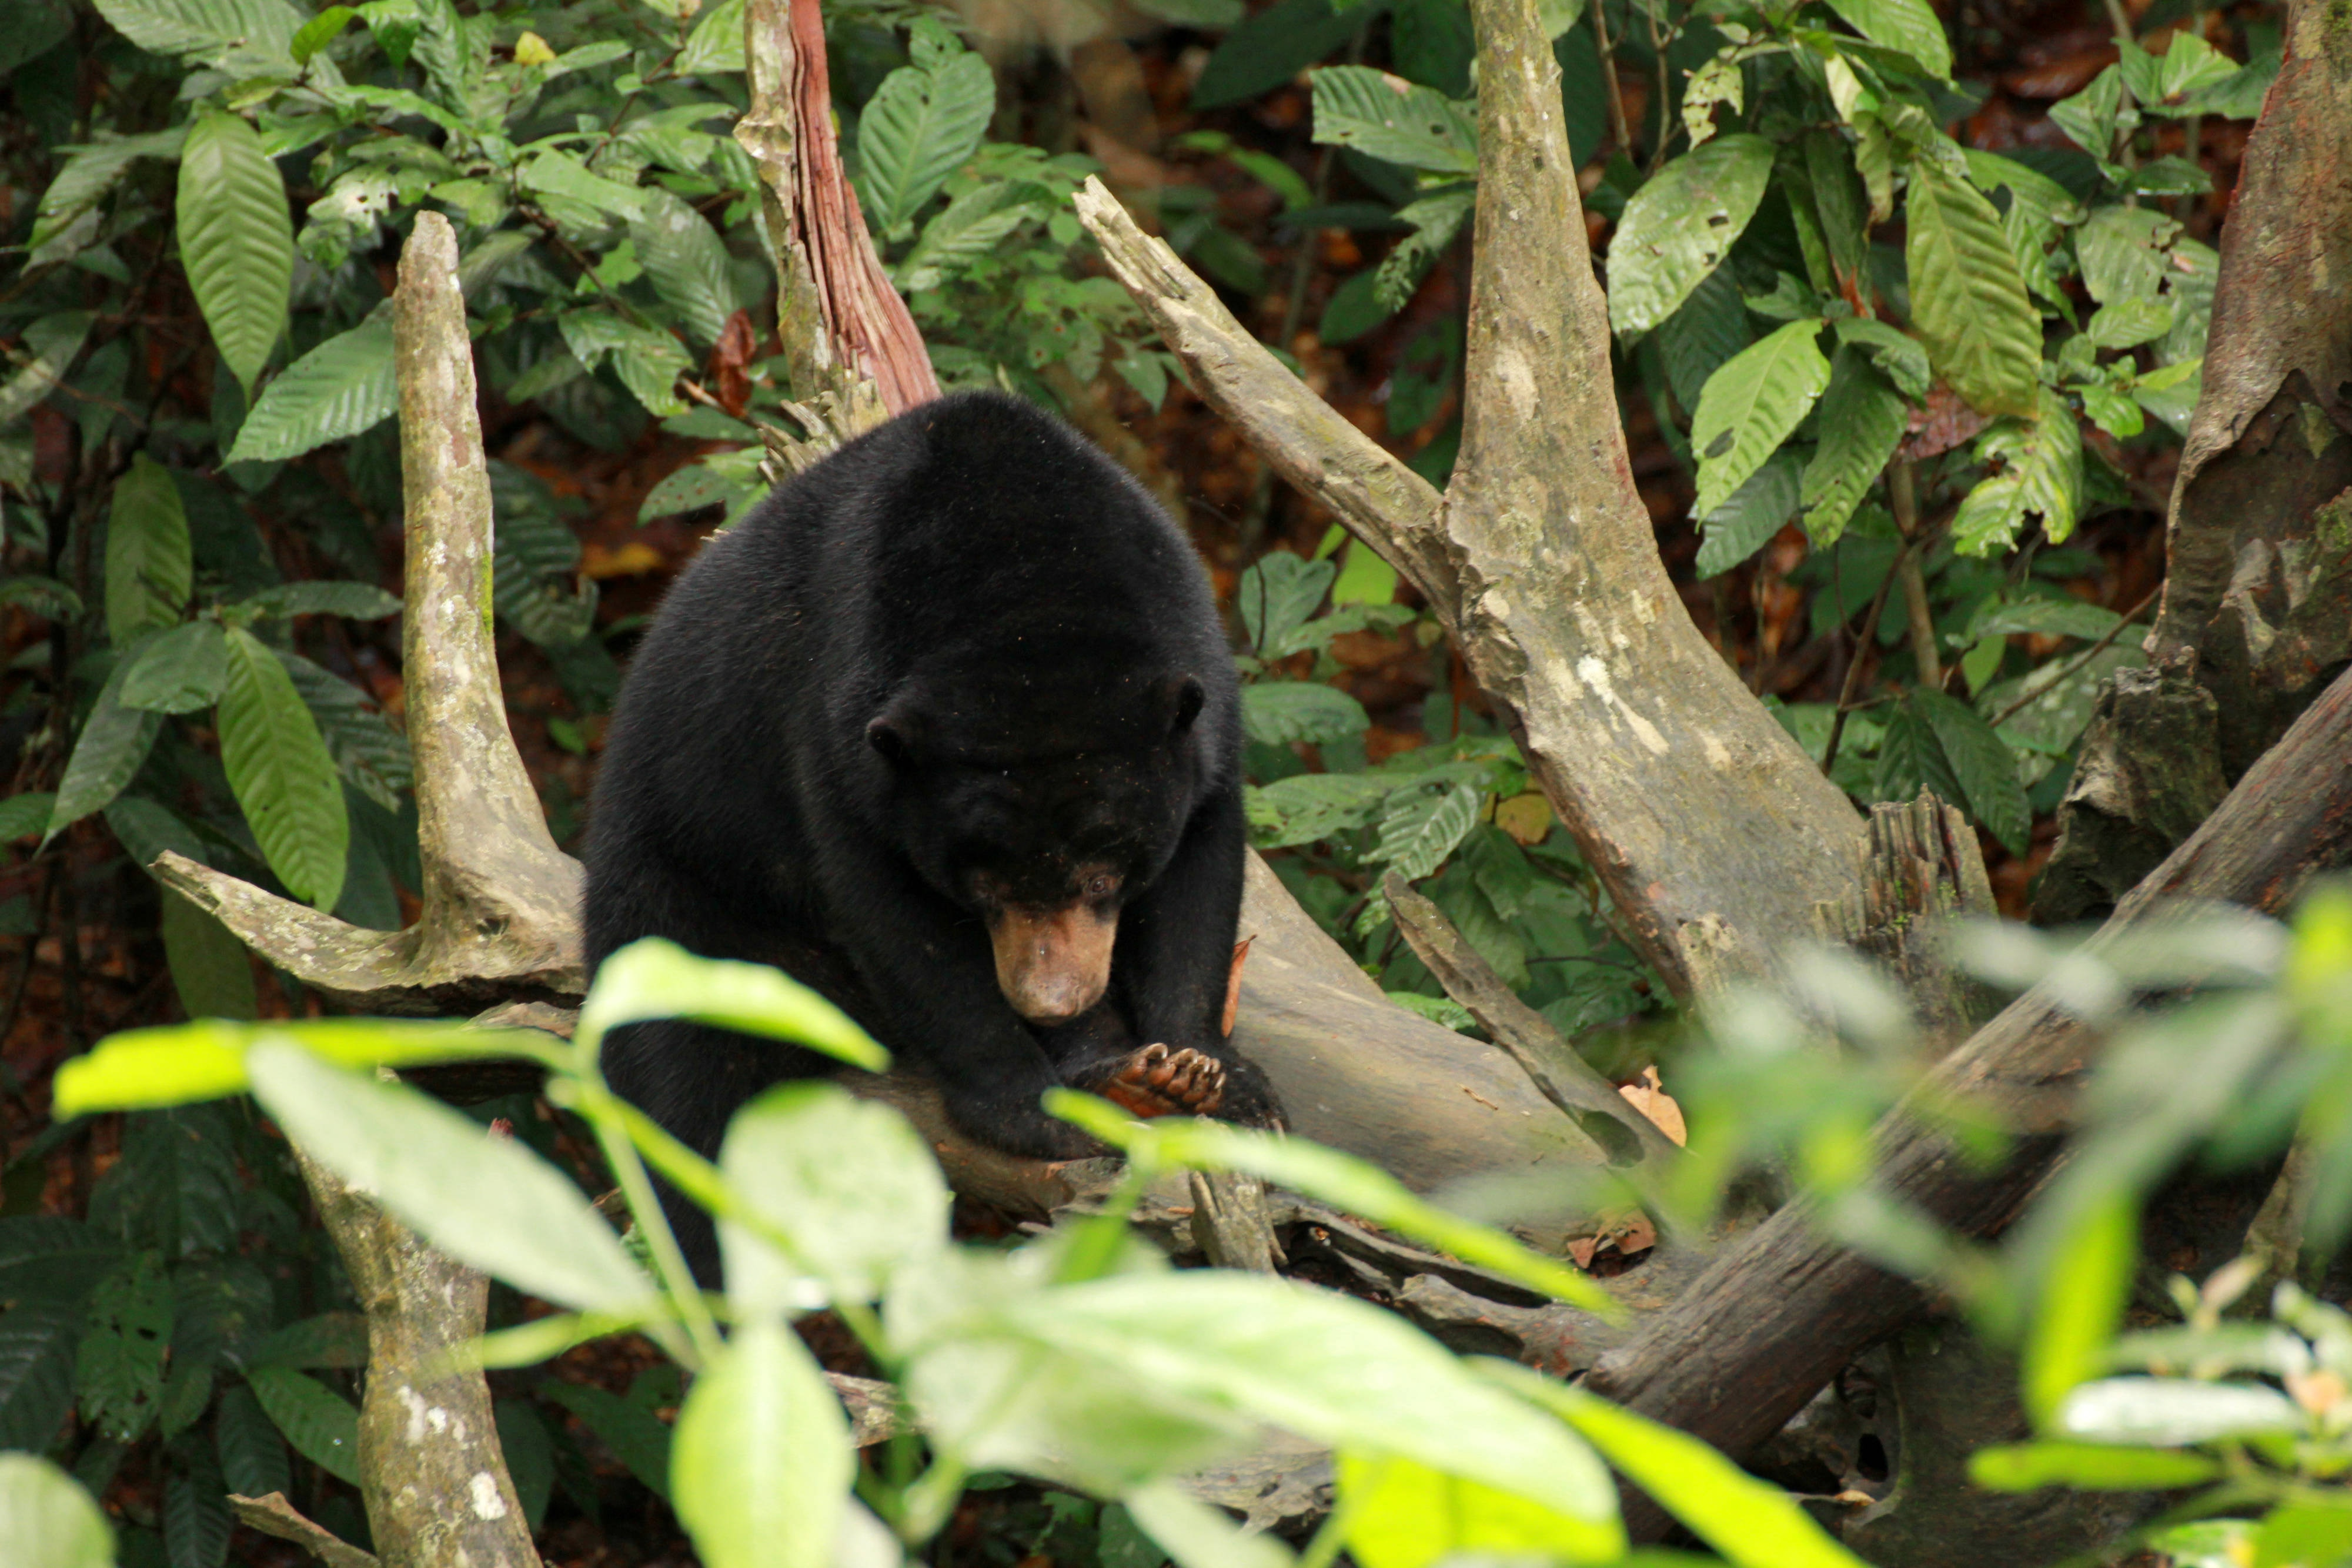 Borneo Sun Bear - Rest